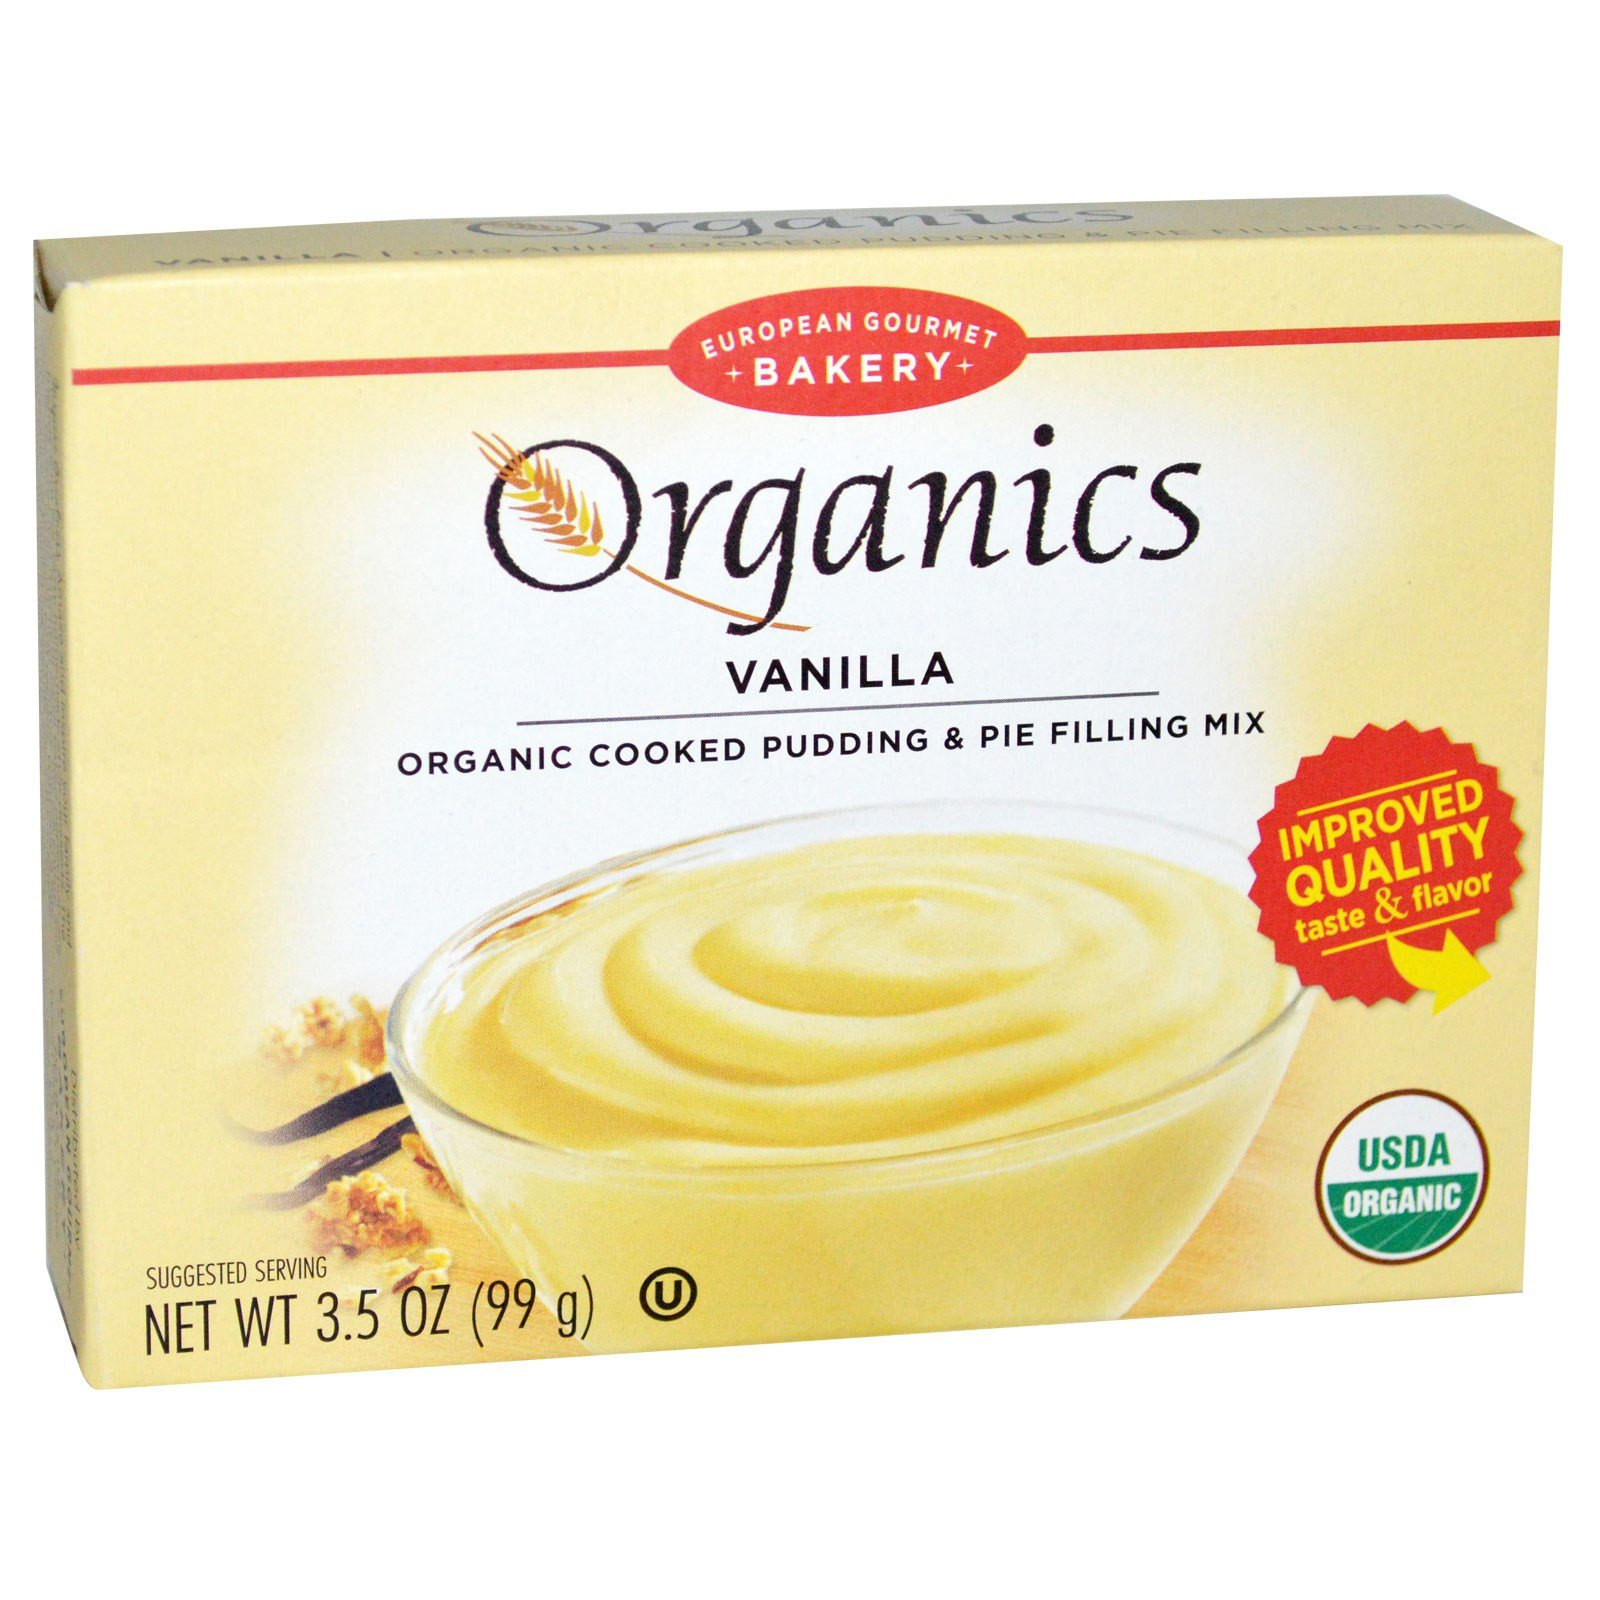 European Gourmet Bakery, Organics, Cooked Pudding and Pie Filling Mix, Vanilla, 3.5 oz (99 g)(PACK 1)